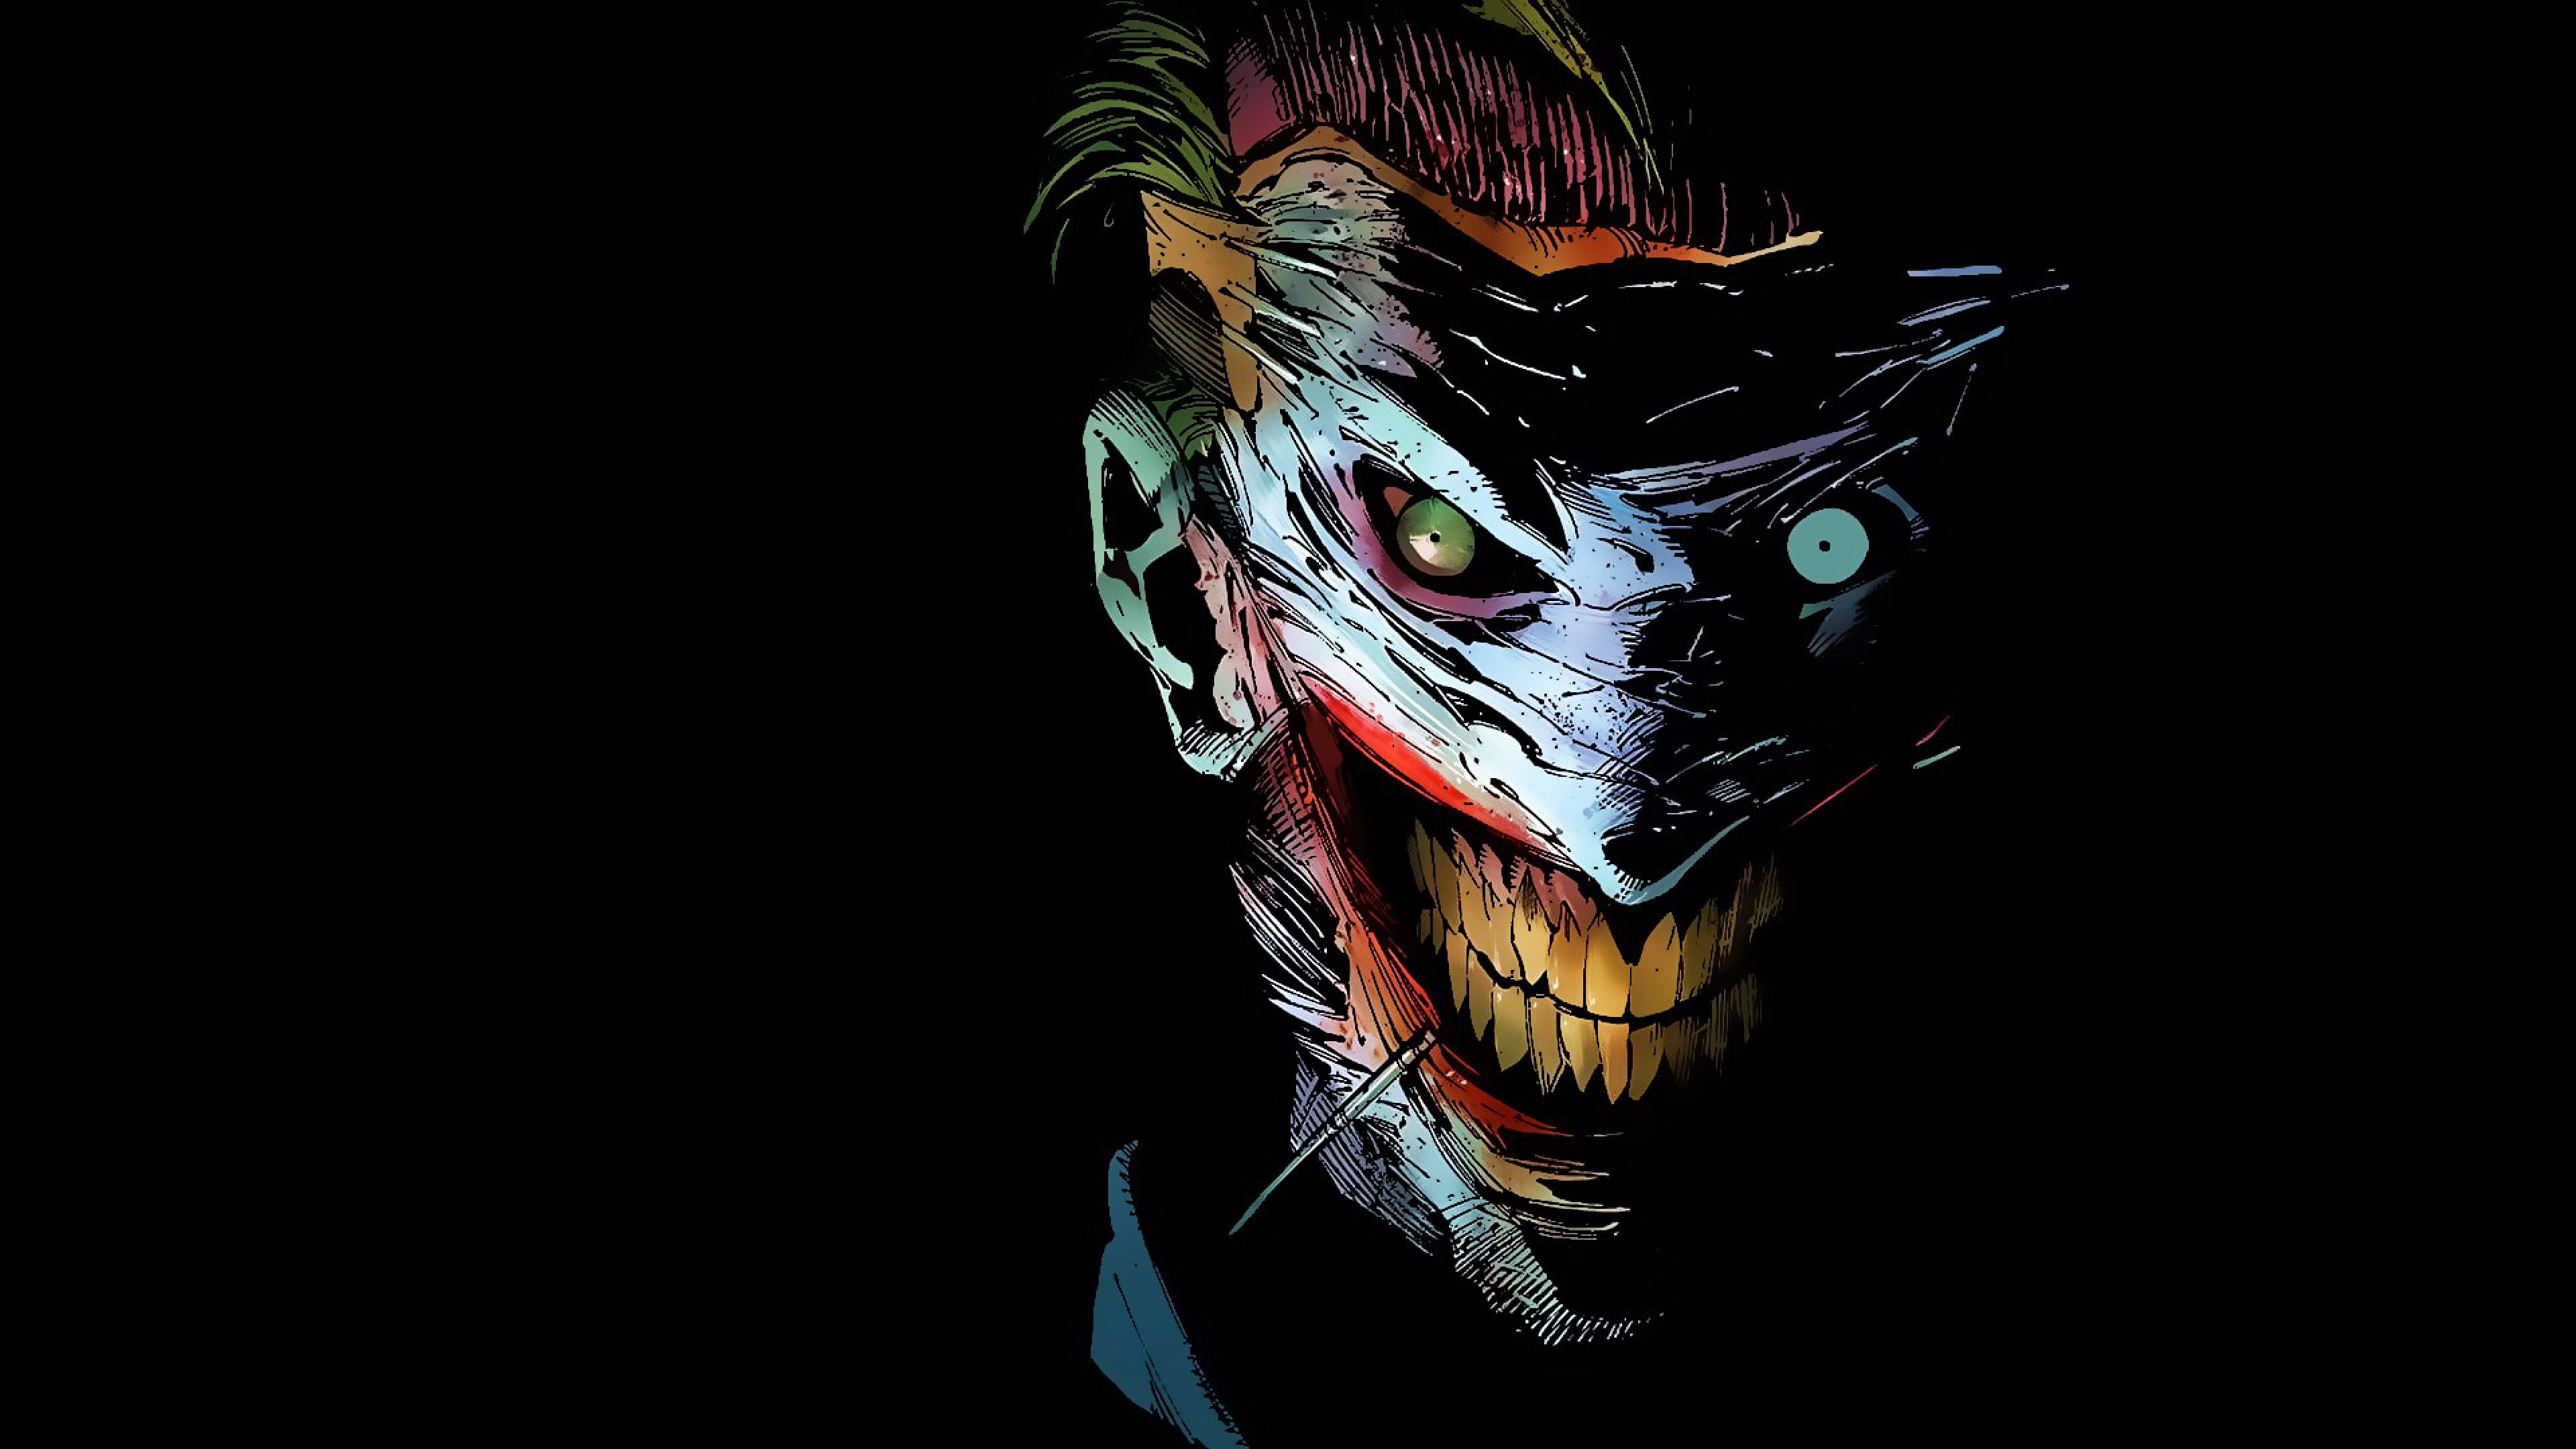 Wallpaper The Jokers Smile